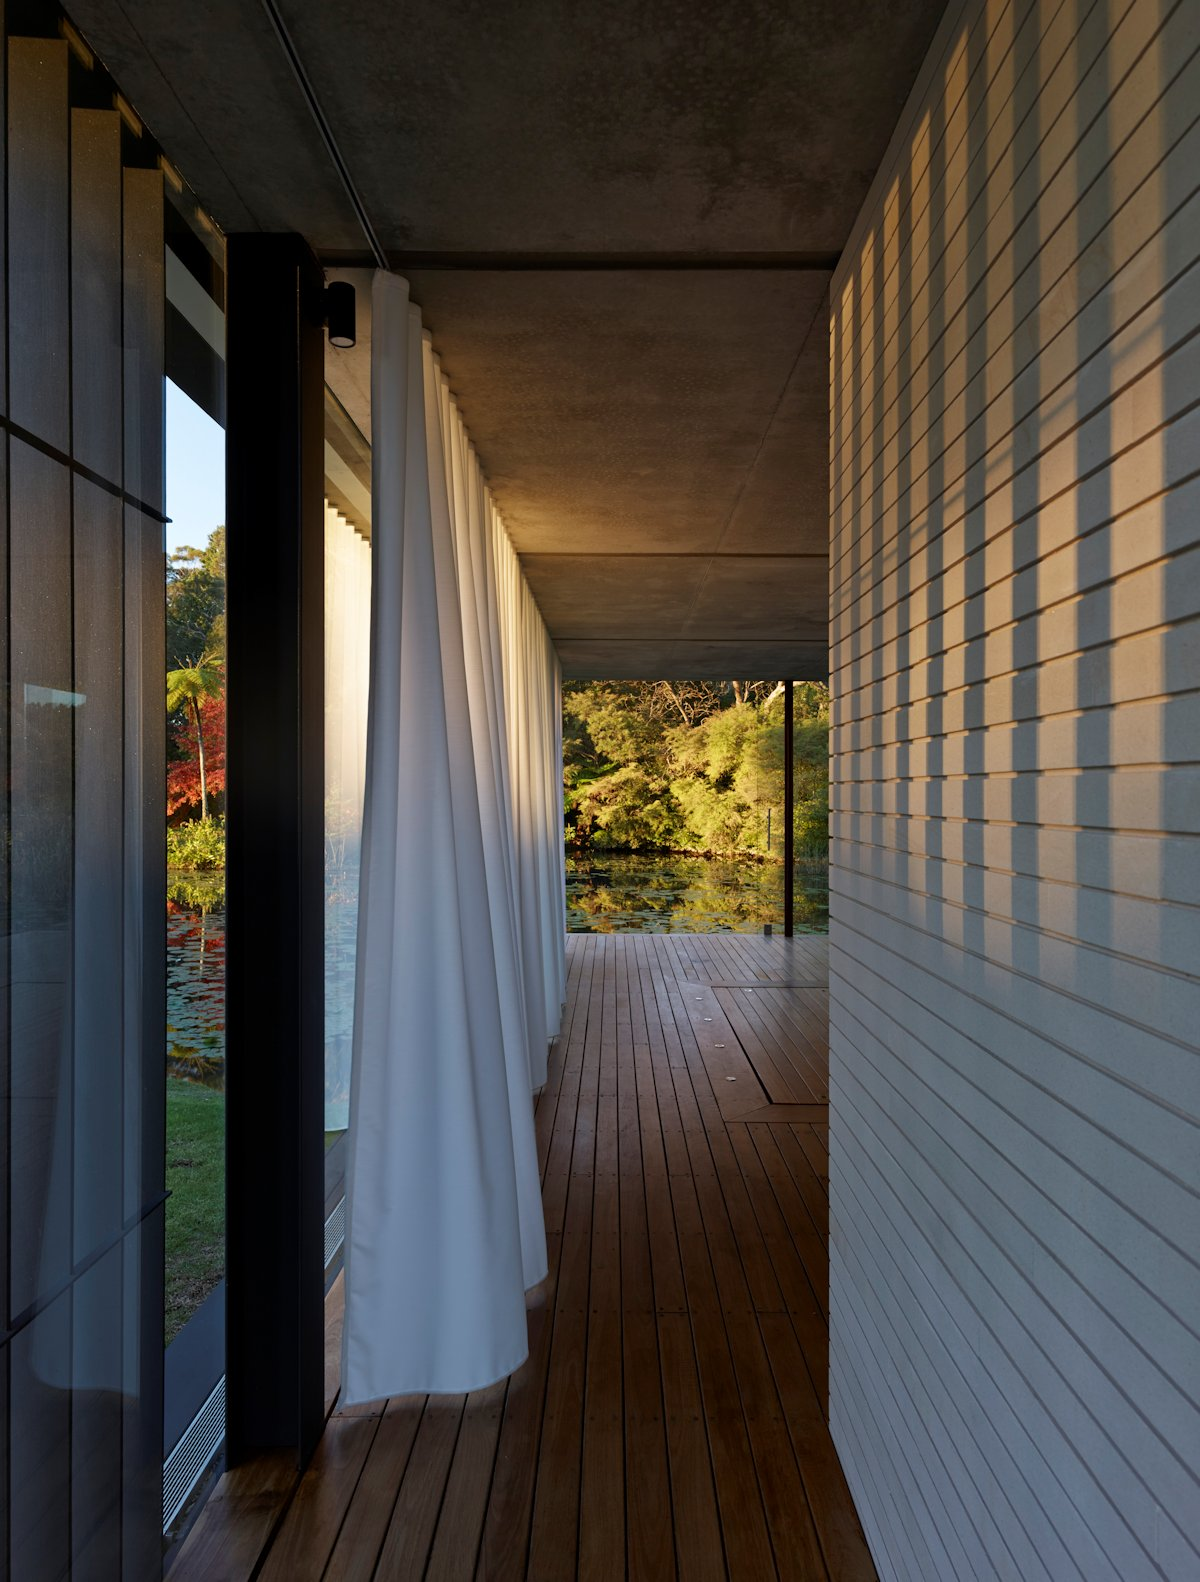 Wooden Wall, Flooring, Glass Walls, Glass Pavilion in Somersby, Australia